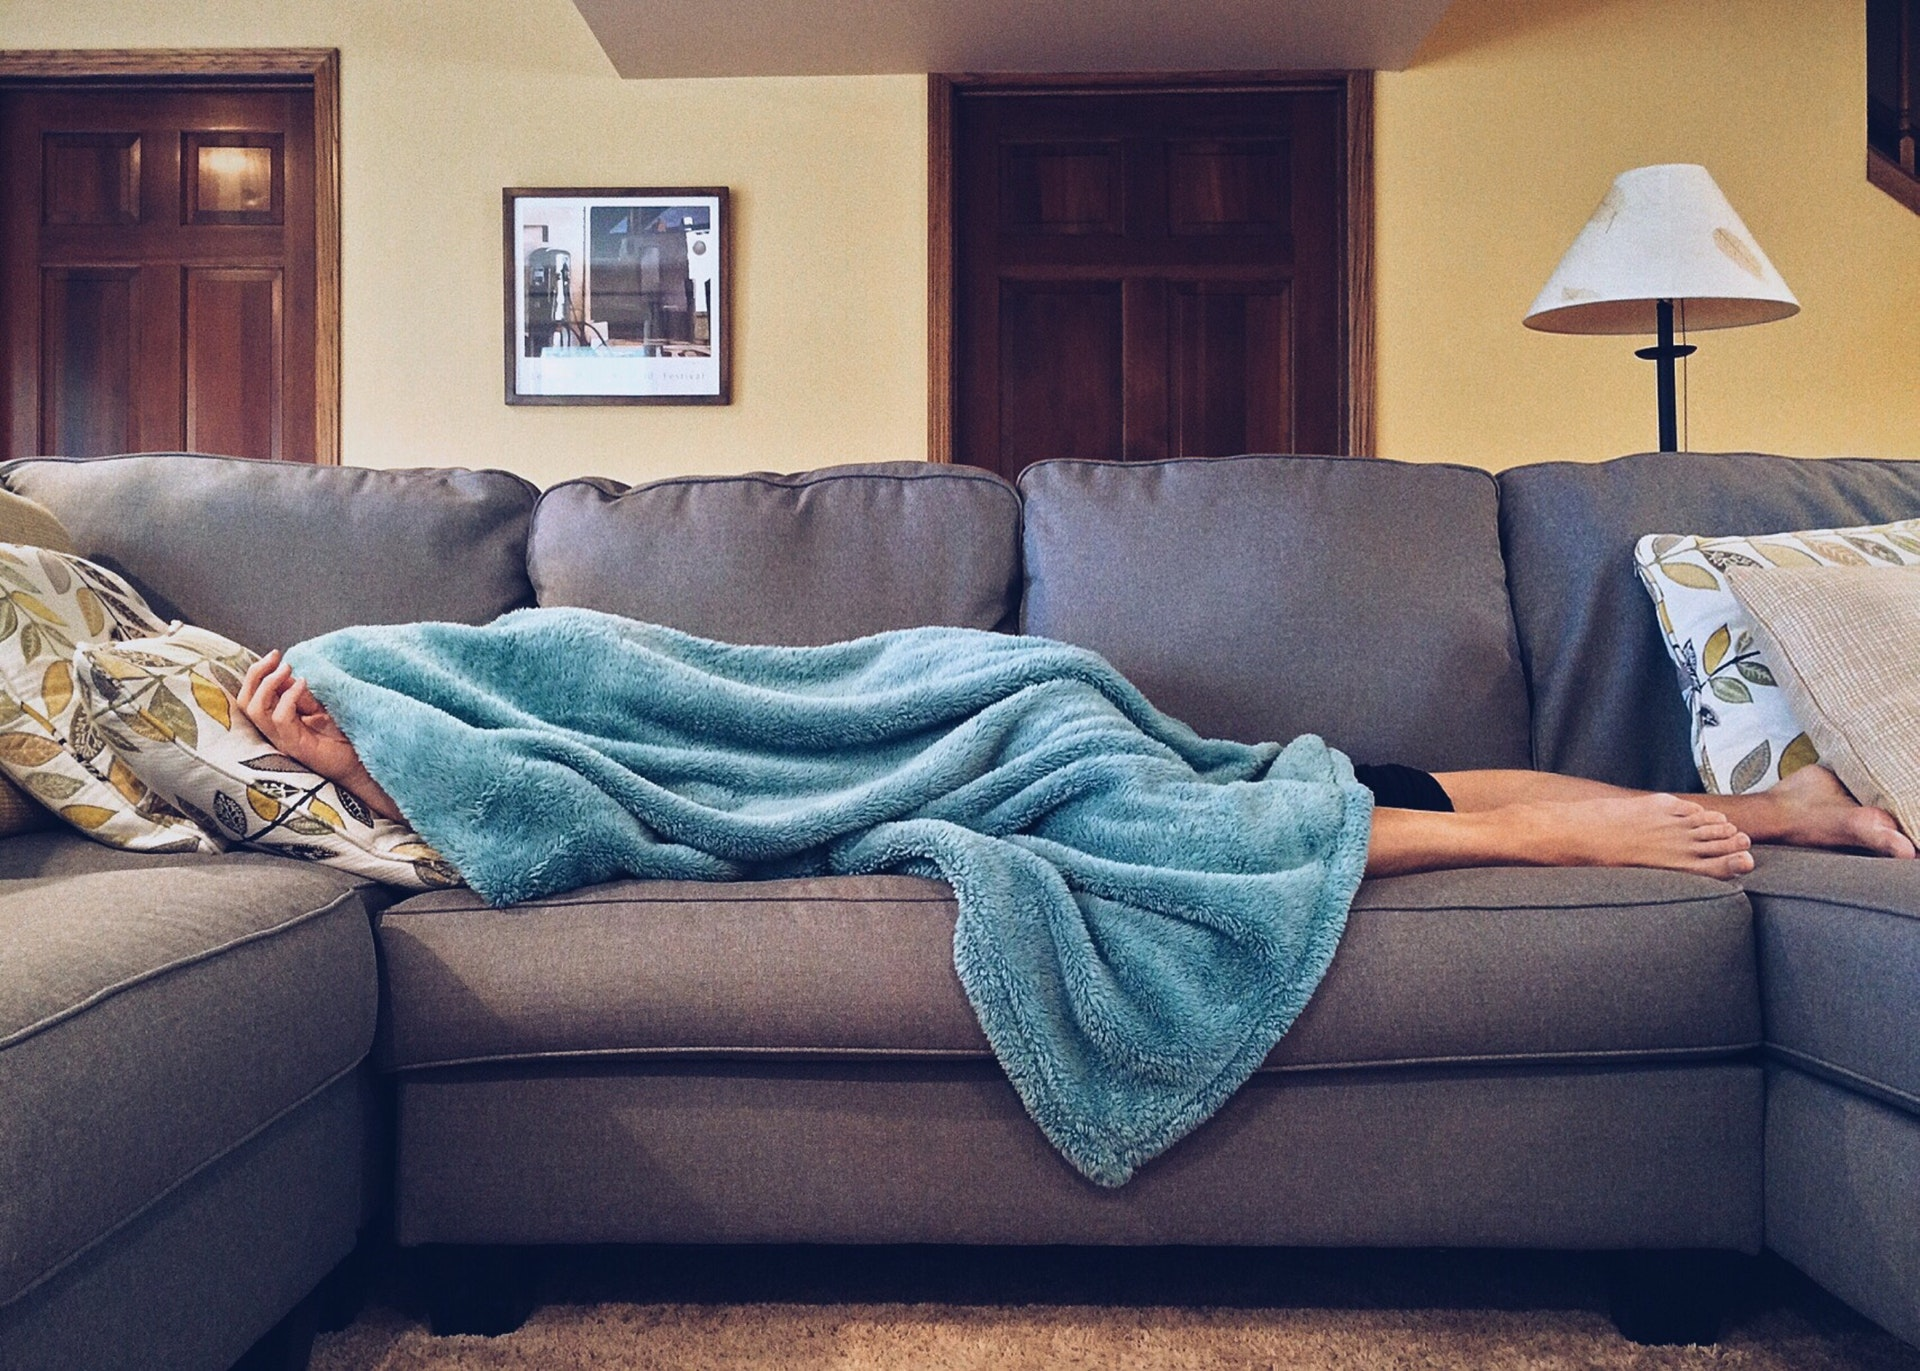 Restless leg syndrome: Treatment, causes and symptoms